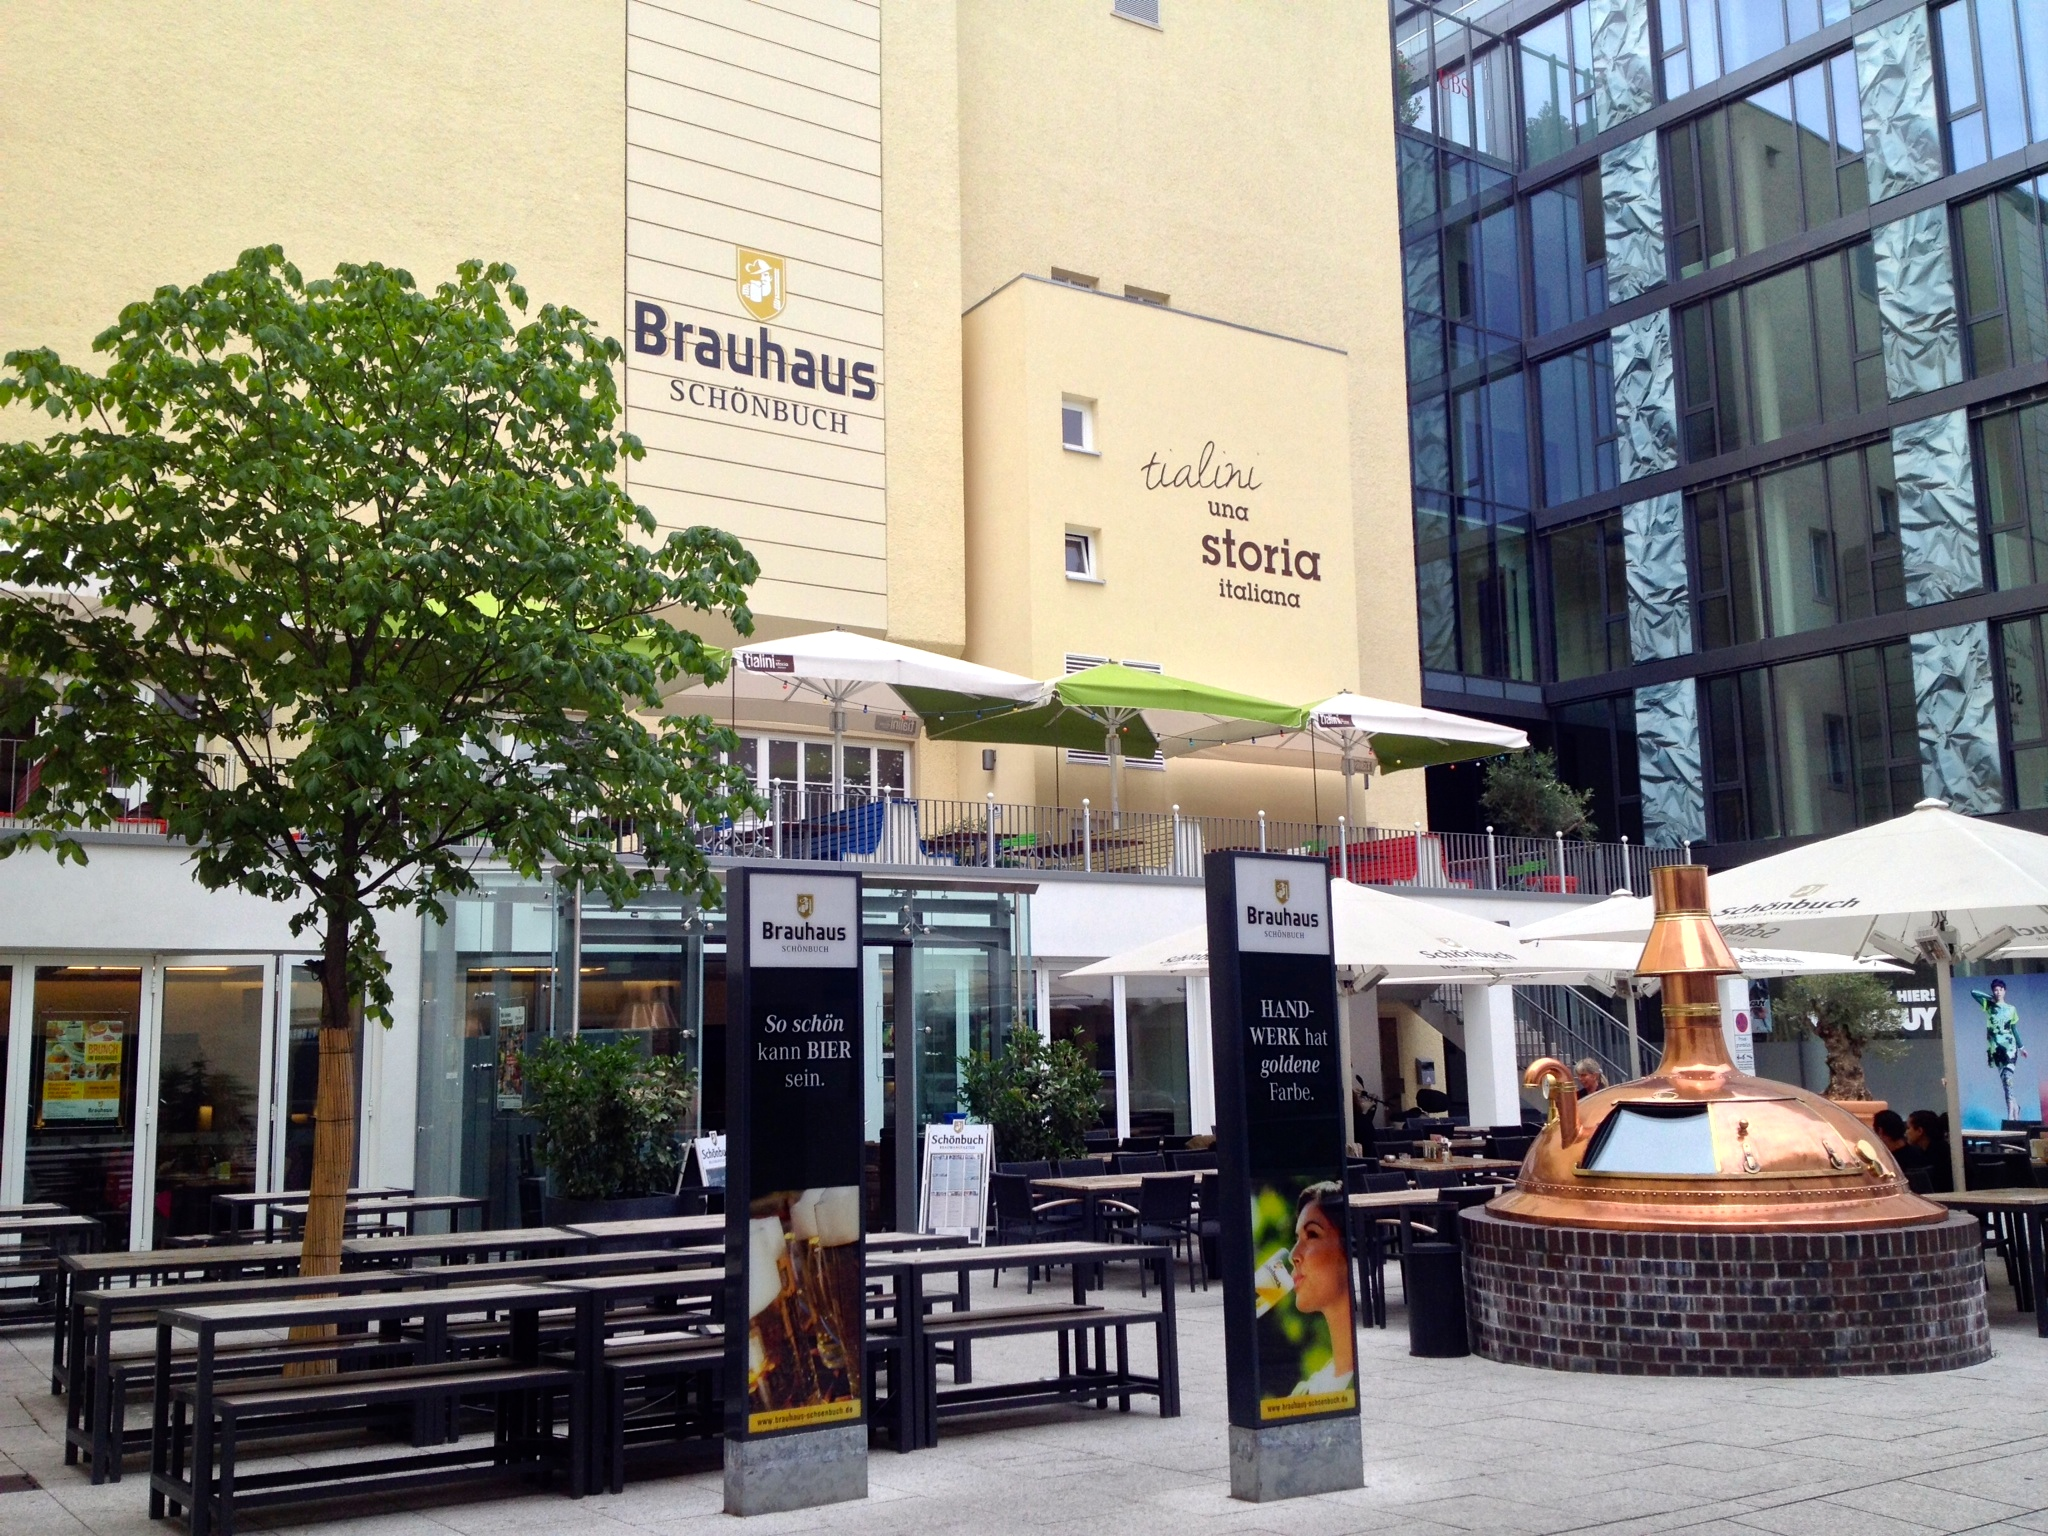 The lovely patio in front of  Brauhaus Schönbuch,  complete with giant copper boiler.